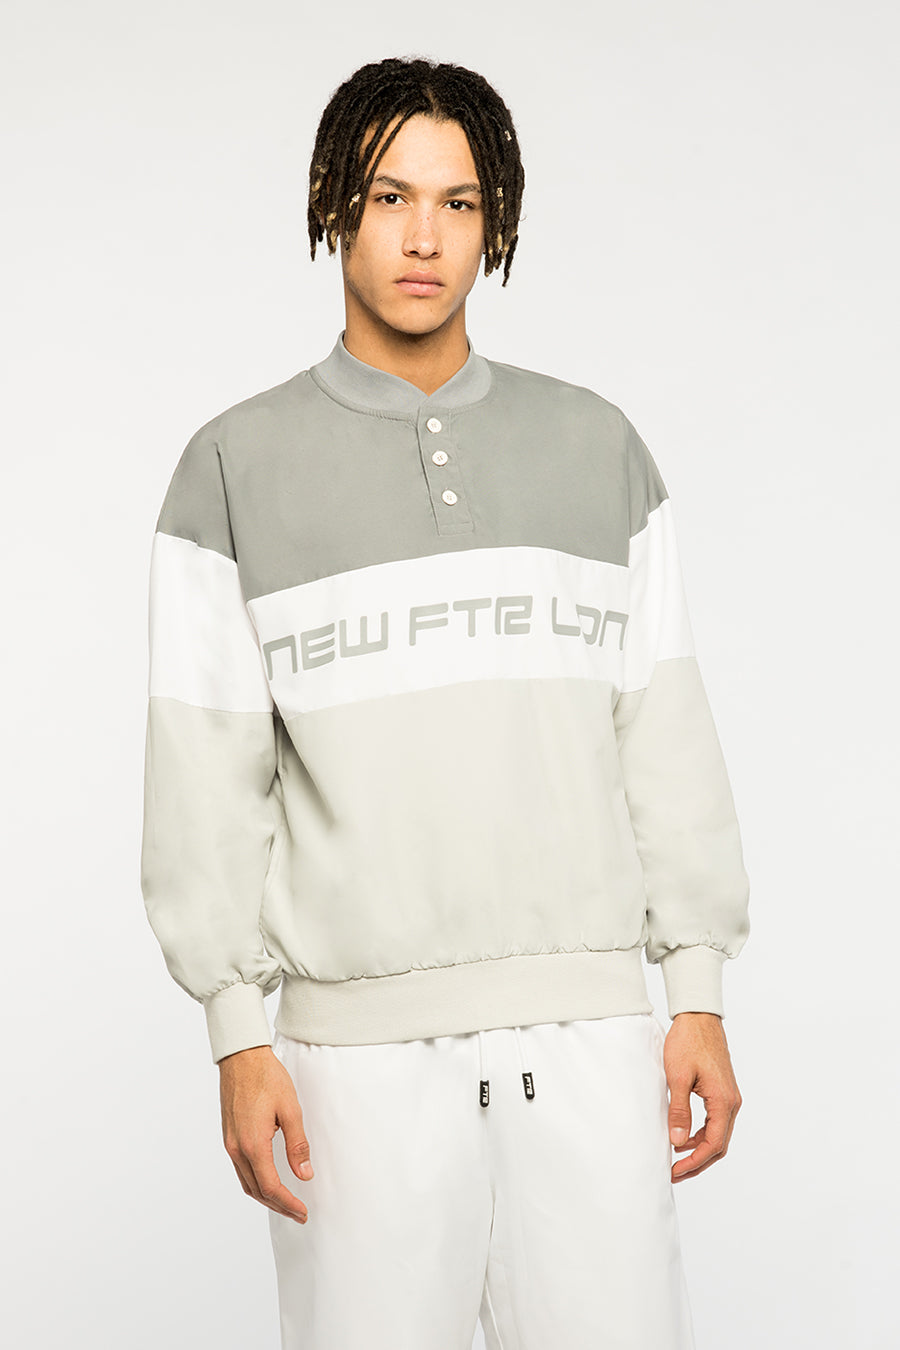 new_future_london_pullover_grey_white_2-1.jpg